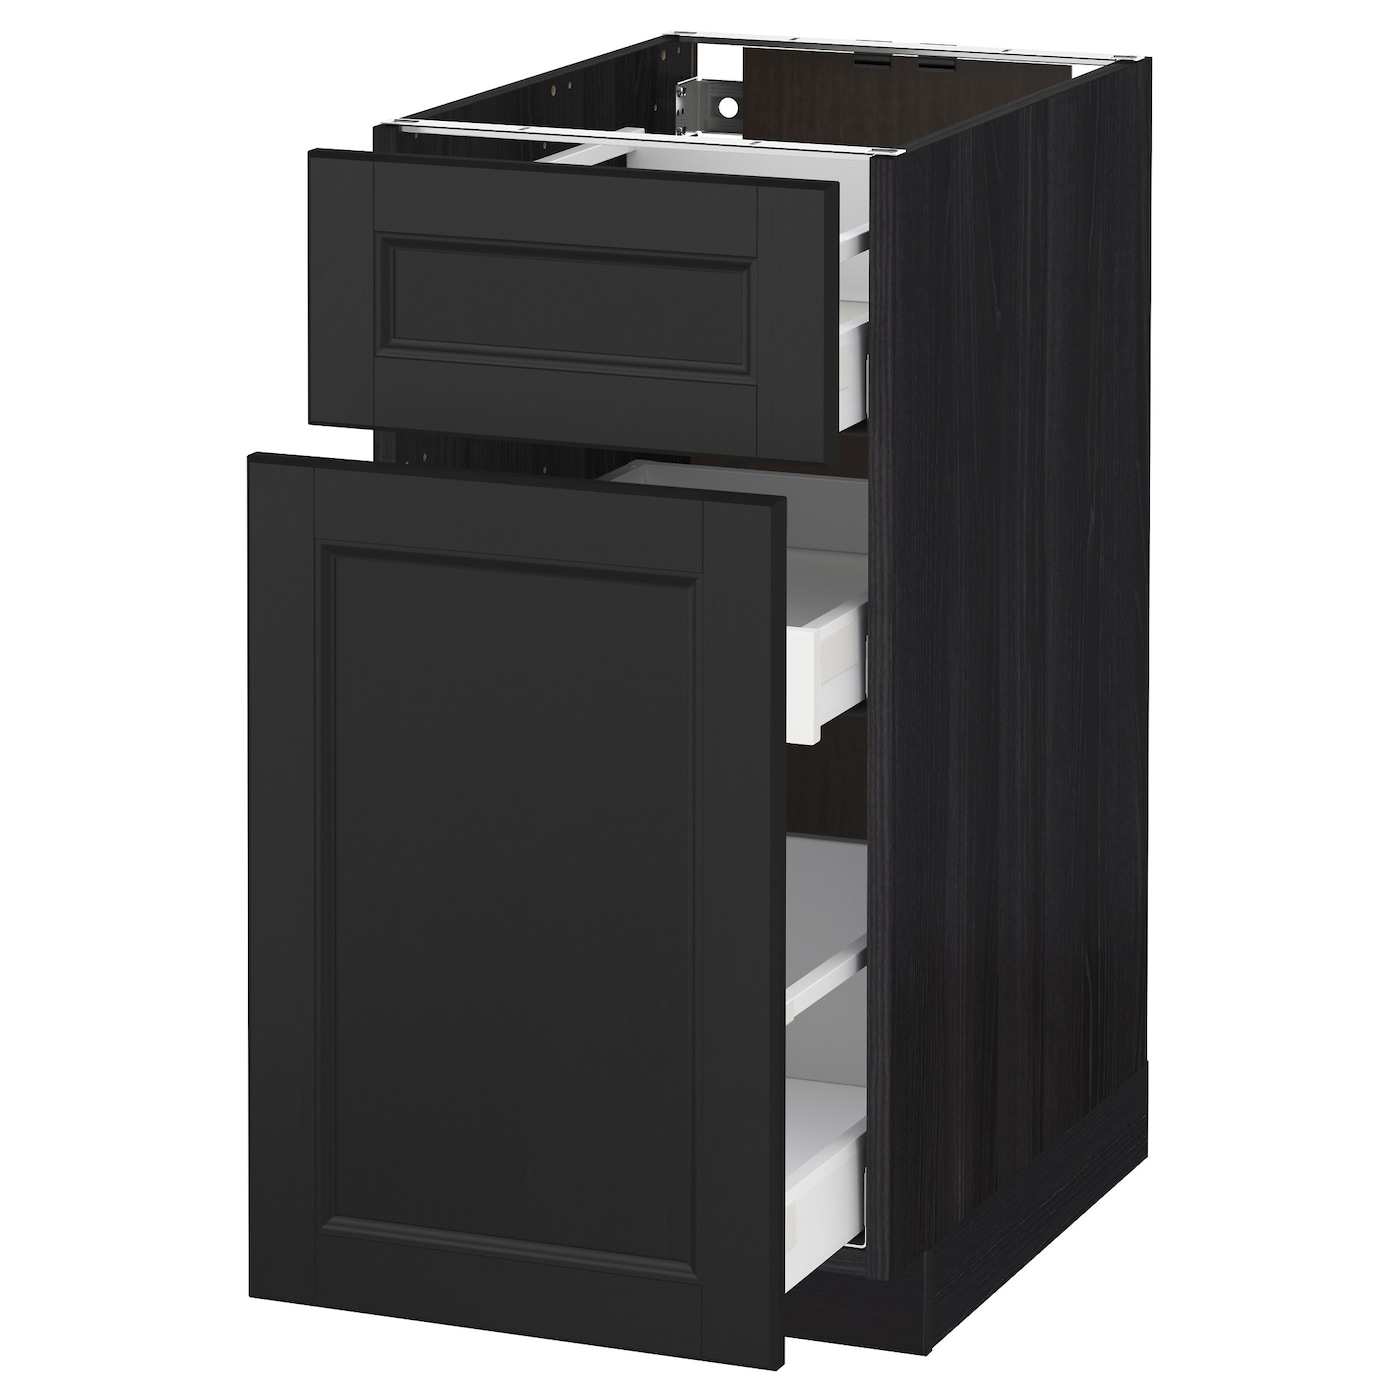 metod maximera base cabinet p out storage drawer black laxarby black brown 40x60 cm ikea. Black Bedroom Furniture Sets. Home Design Ideas